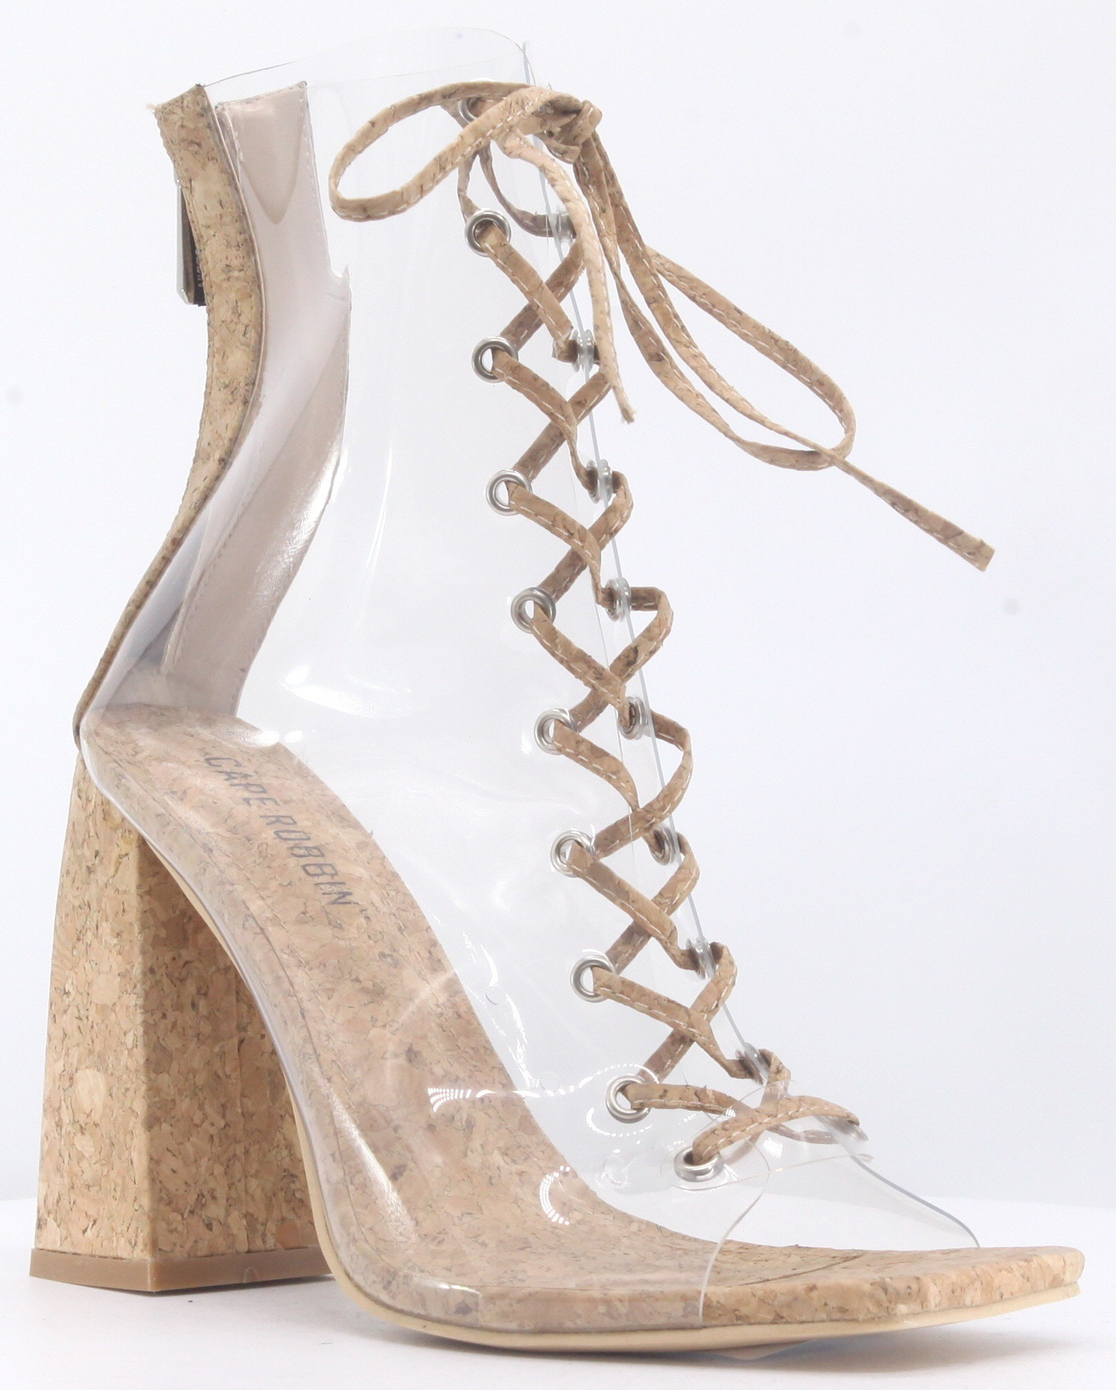 CLEAR PVC TRANSPARENT LACE UP BOOTIE - orangeshine.com